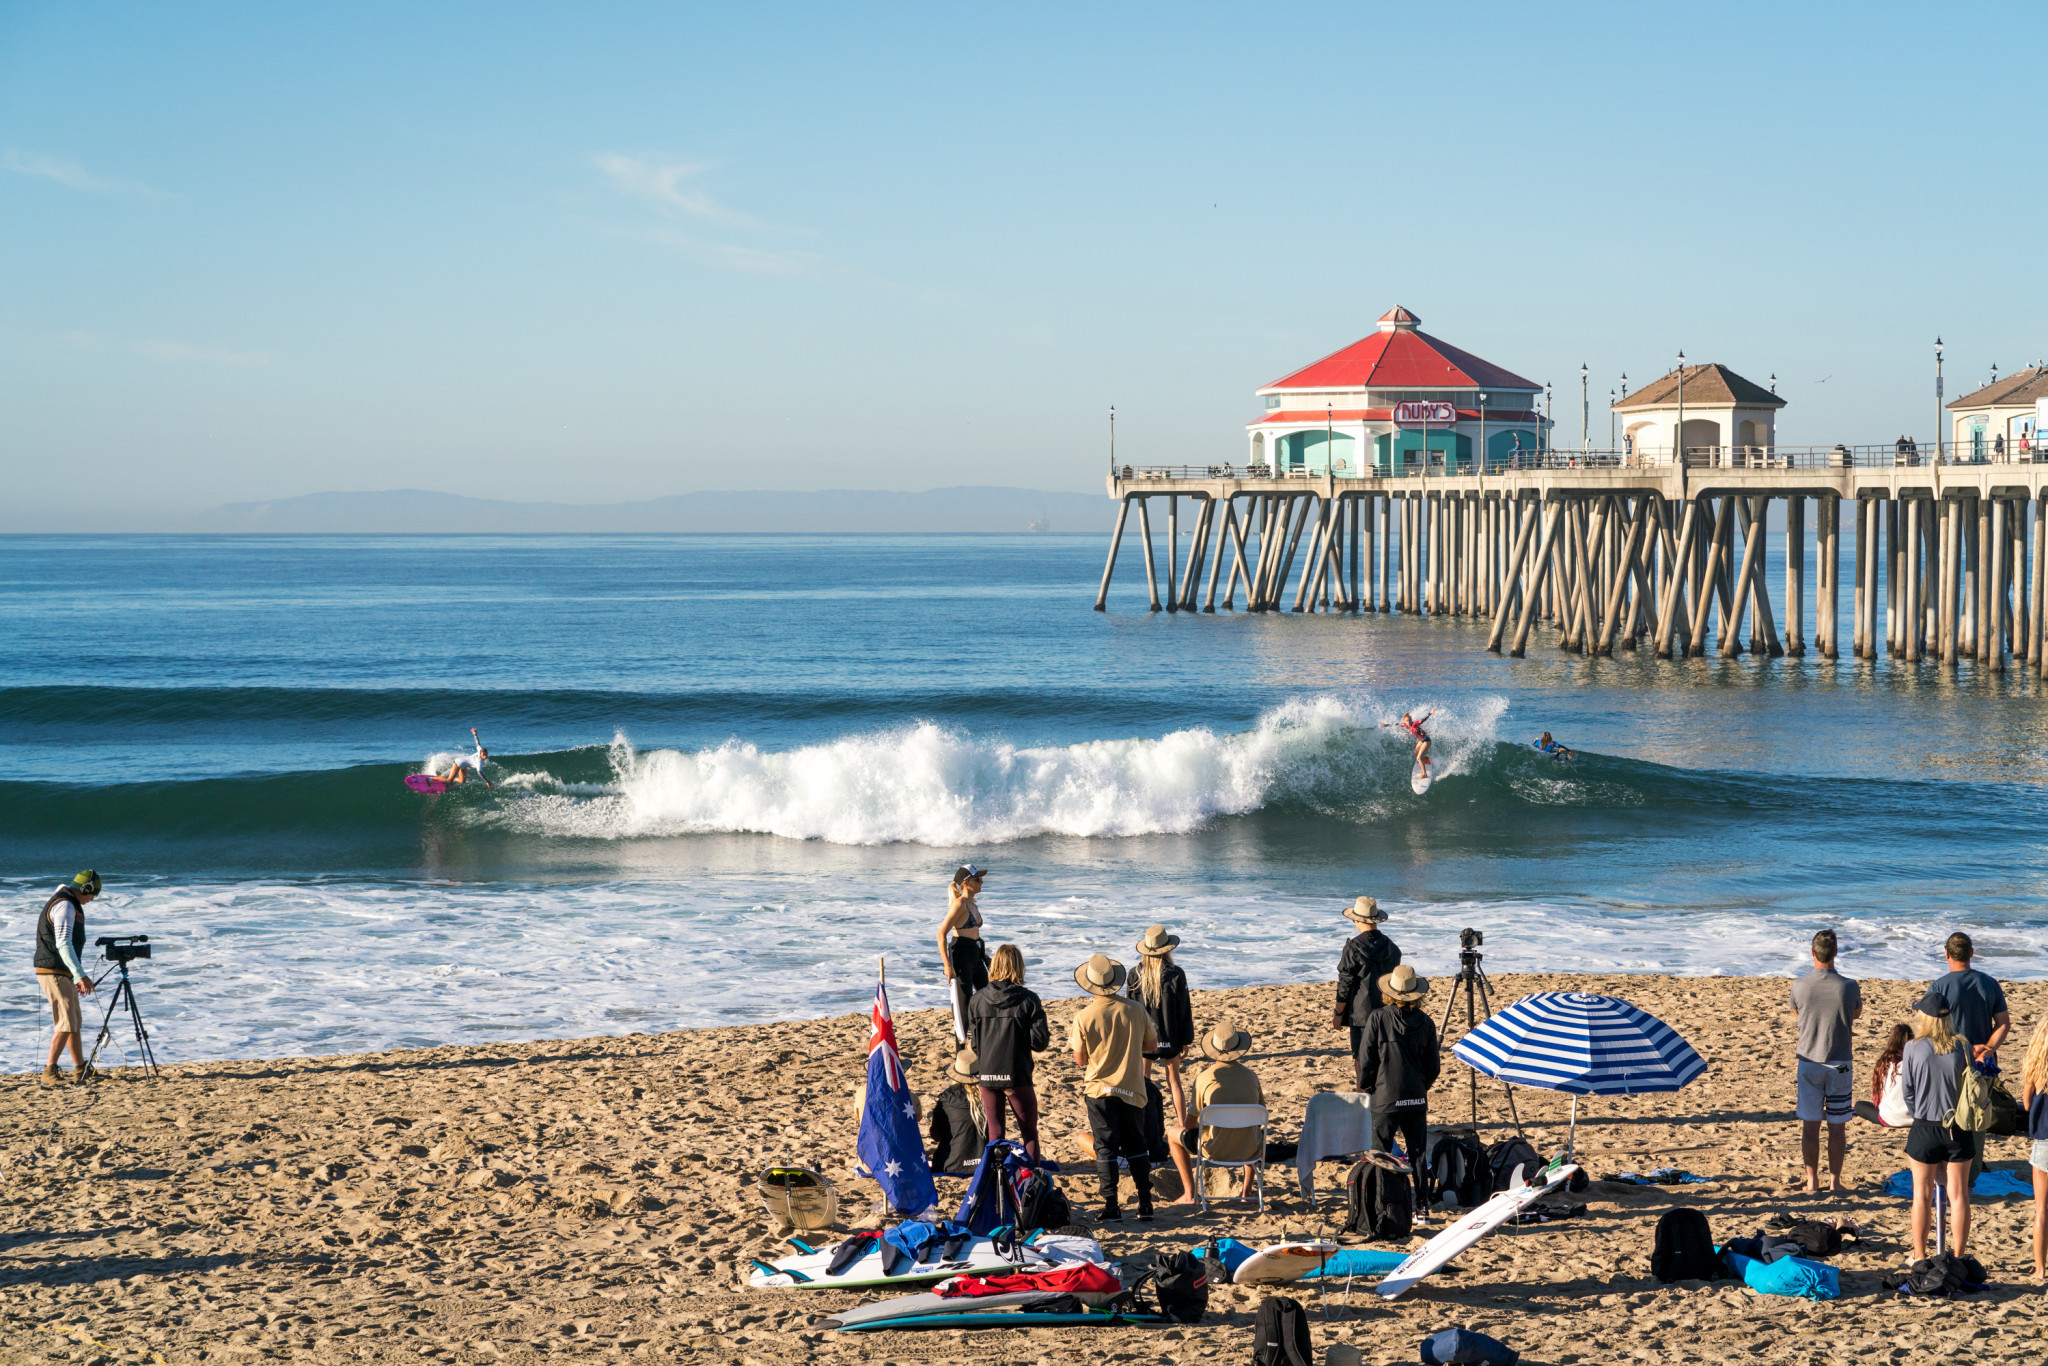 The event at Tokyo 2020 will be more than just a surfing competition, designed to show off wider surfing culture ©ISA